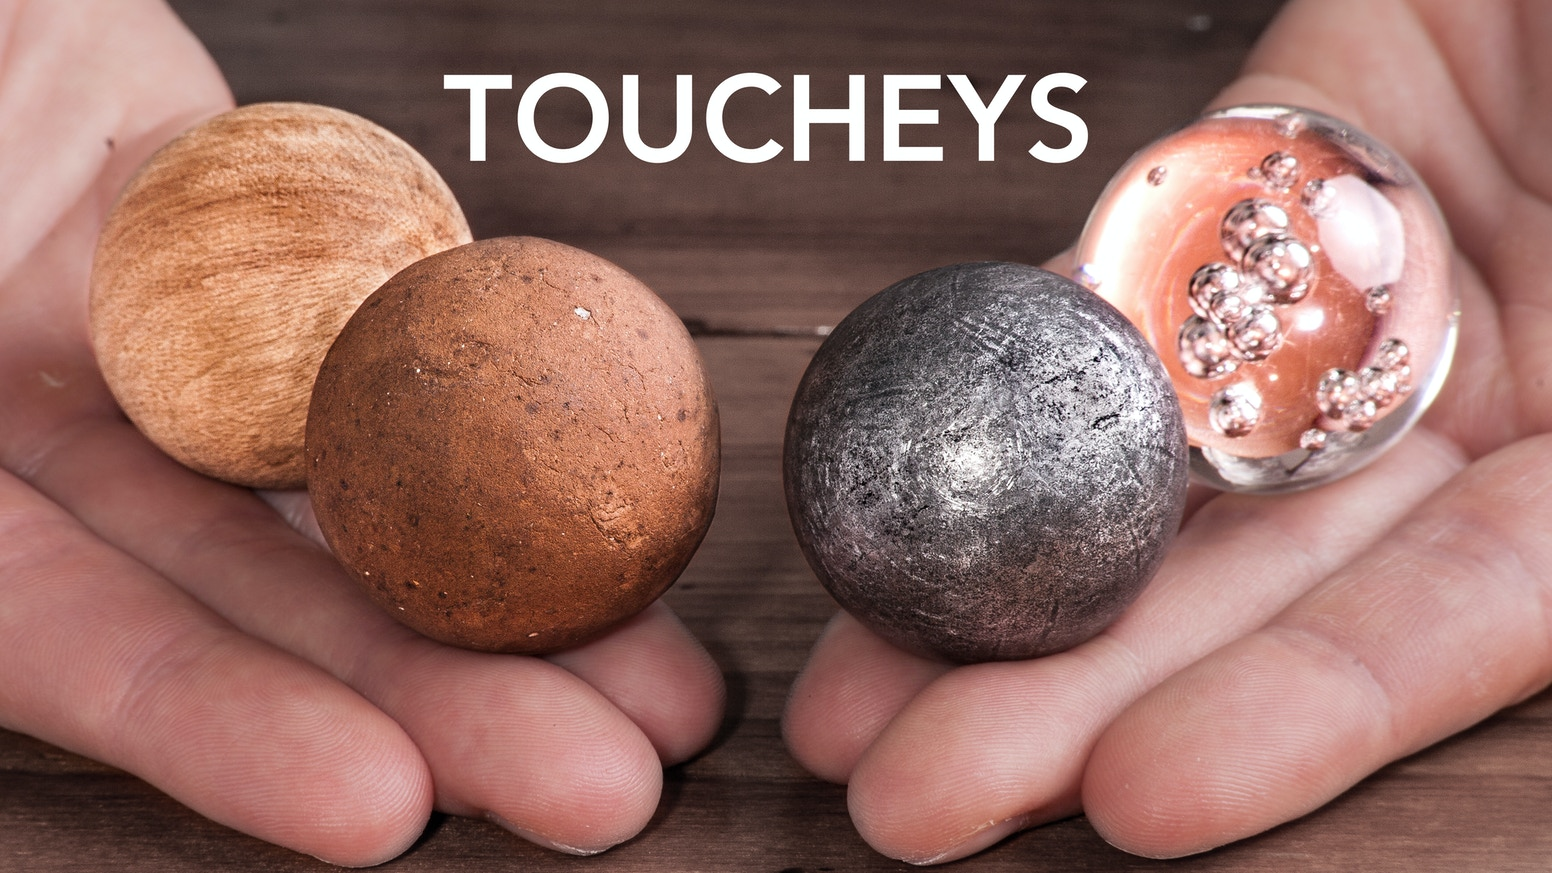 Relieve stress, relax, improve focus, ease anxiety and explore meditation with Toucheys.  Reach mindfulness one touch at a time!